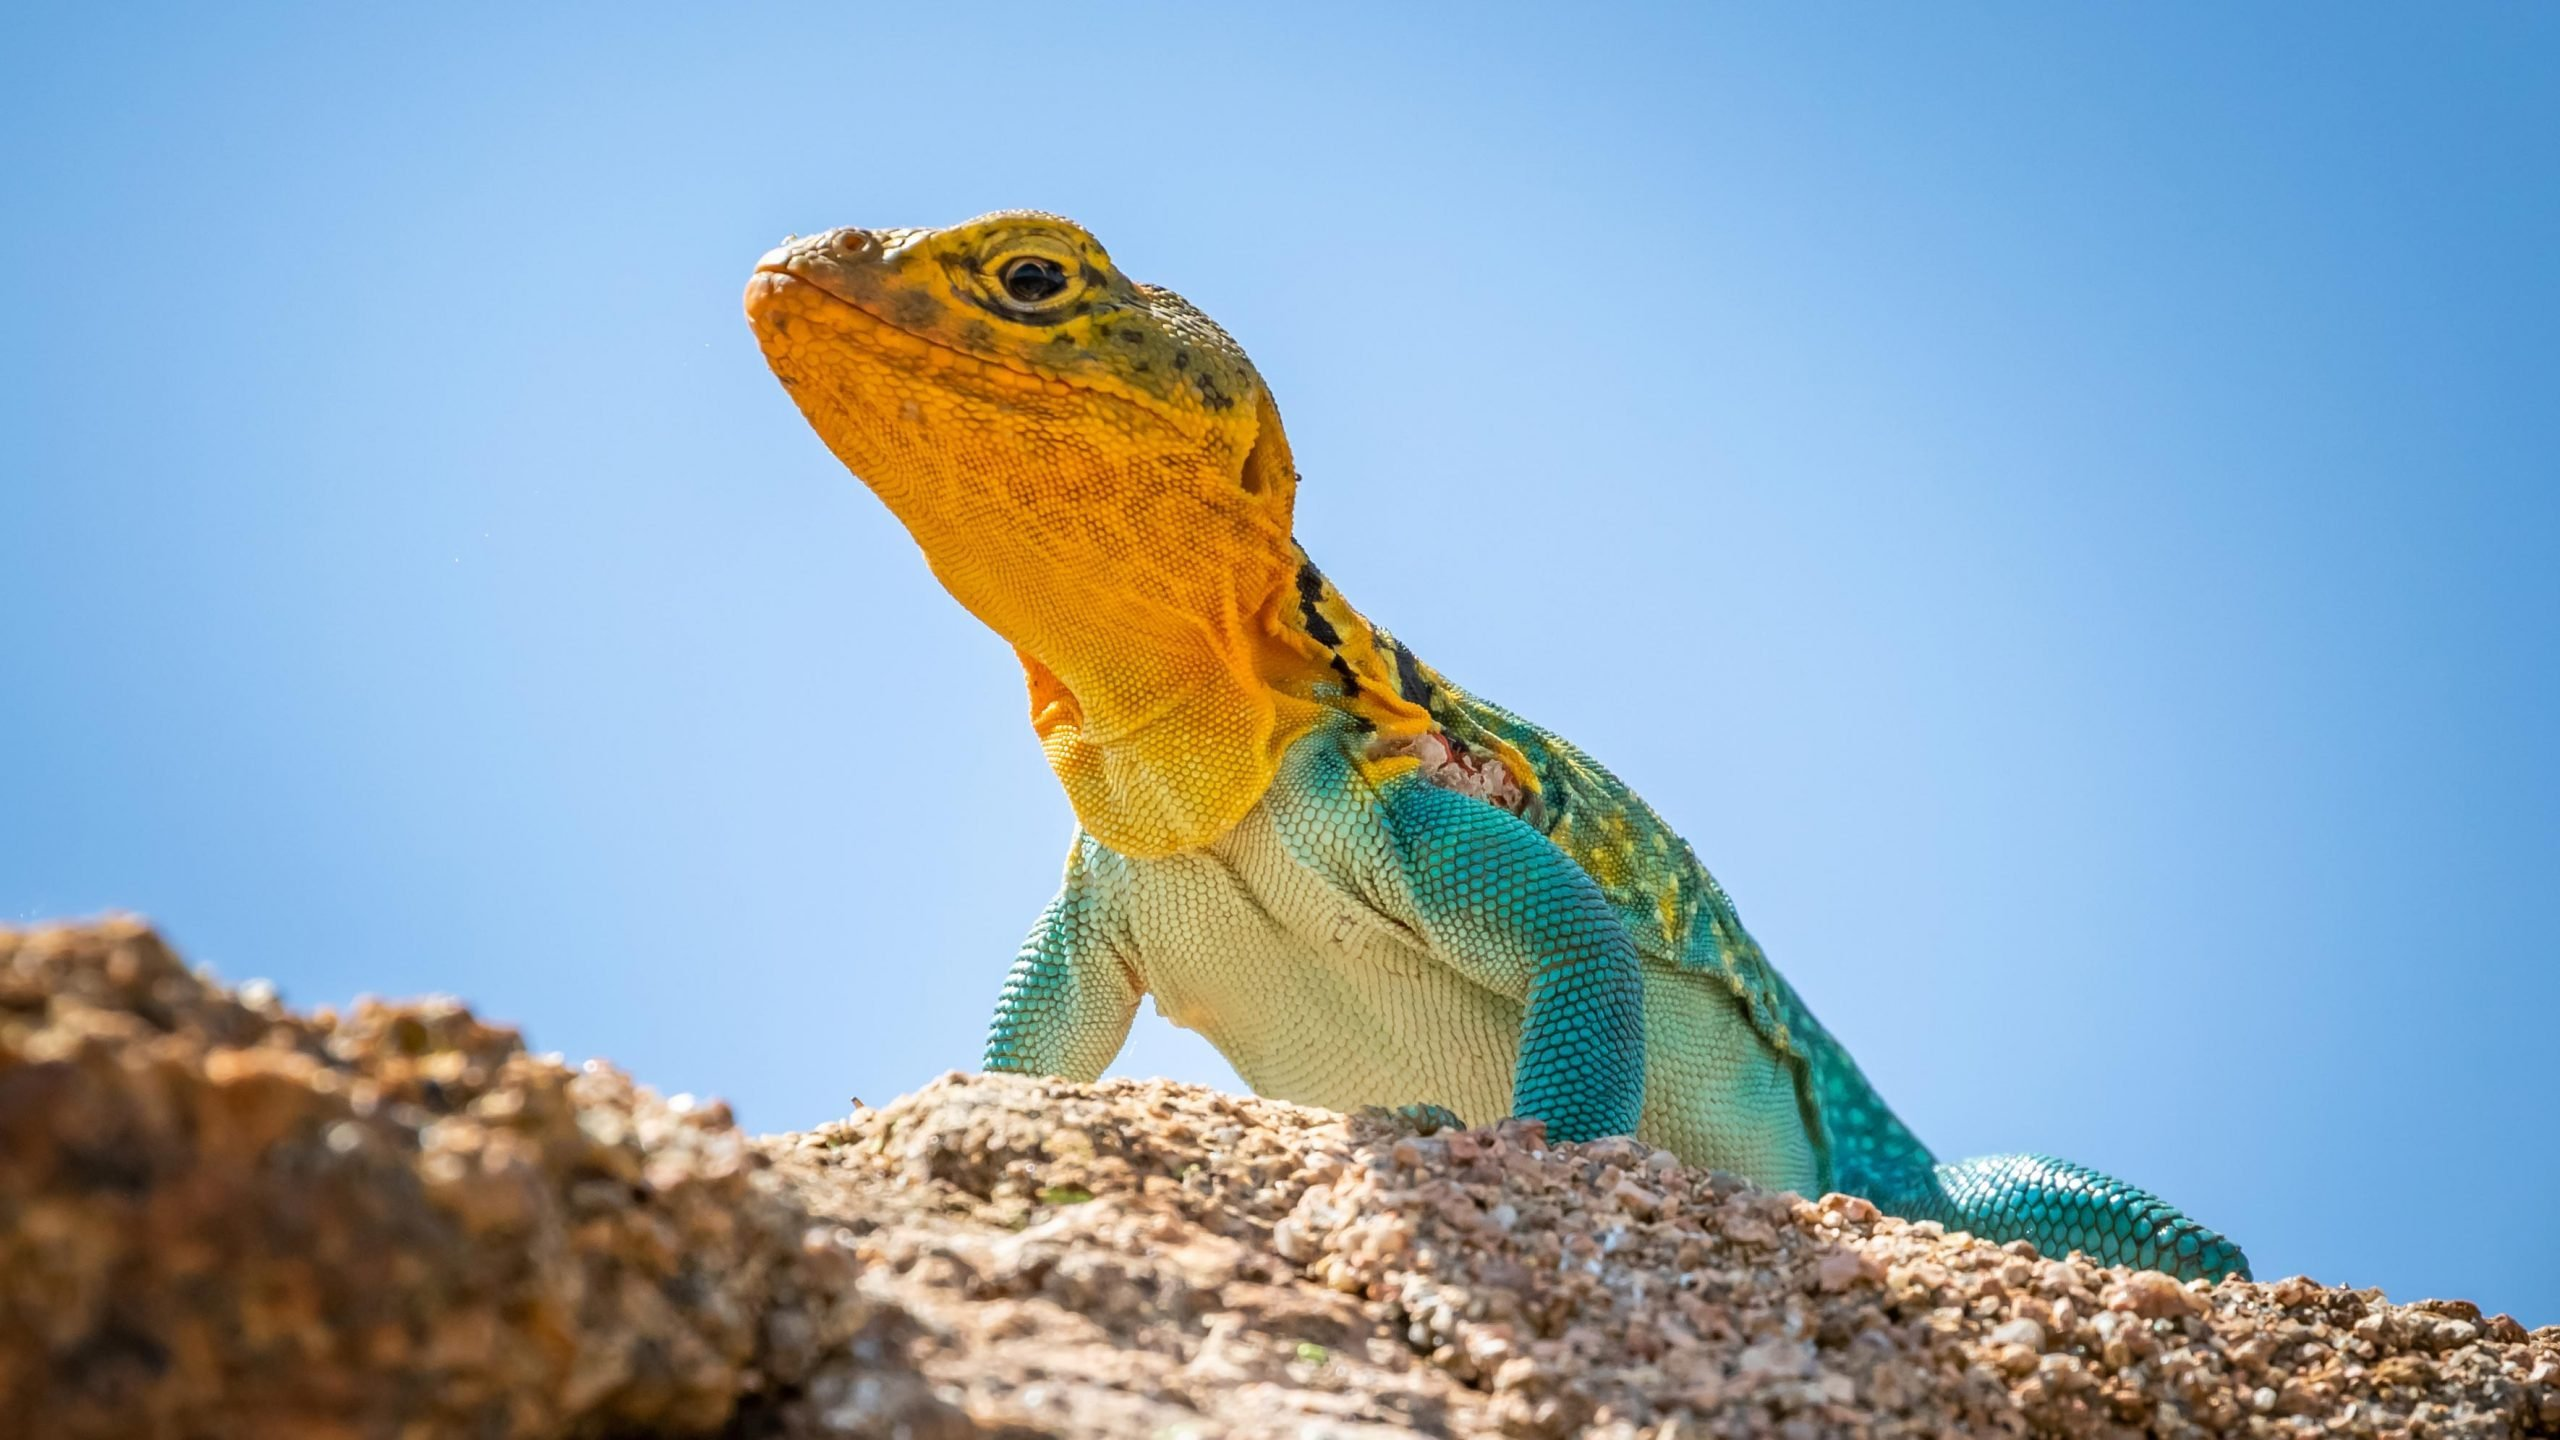 A colorful male Collared Lizard